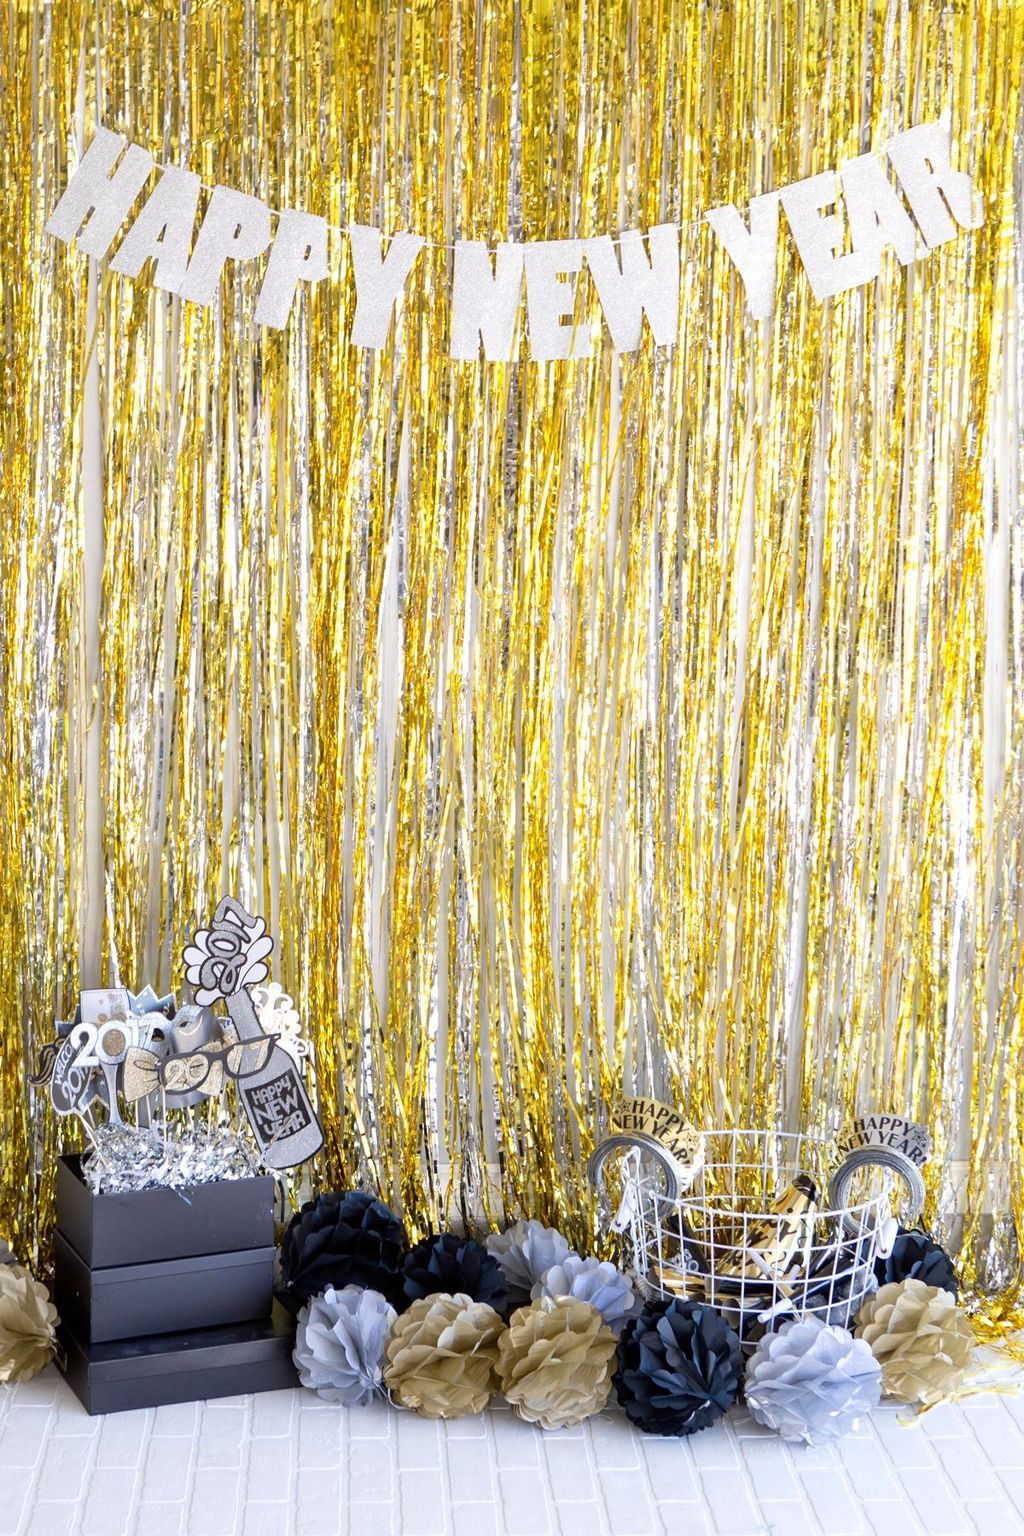 20+ Gold And Black New Years Eve Party Decor